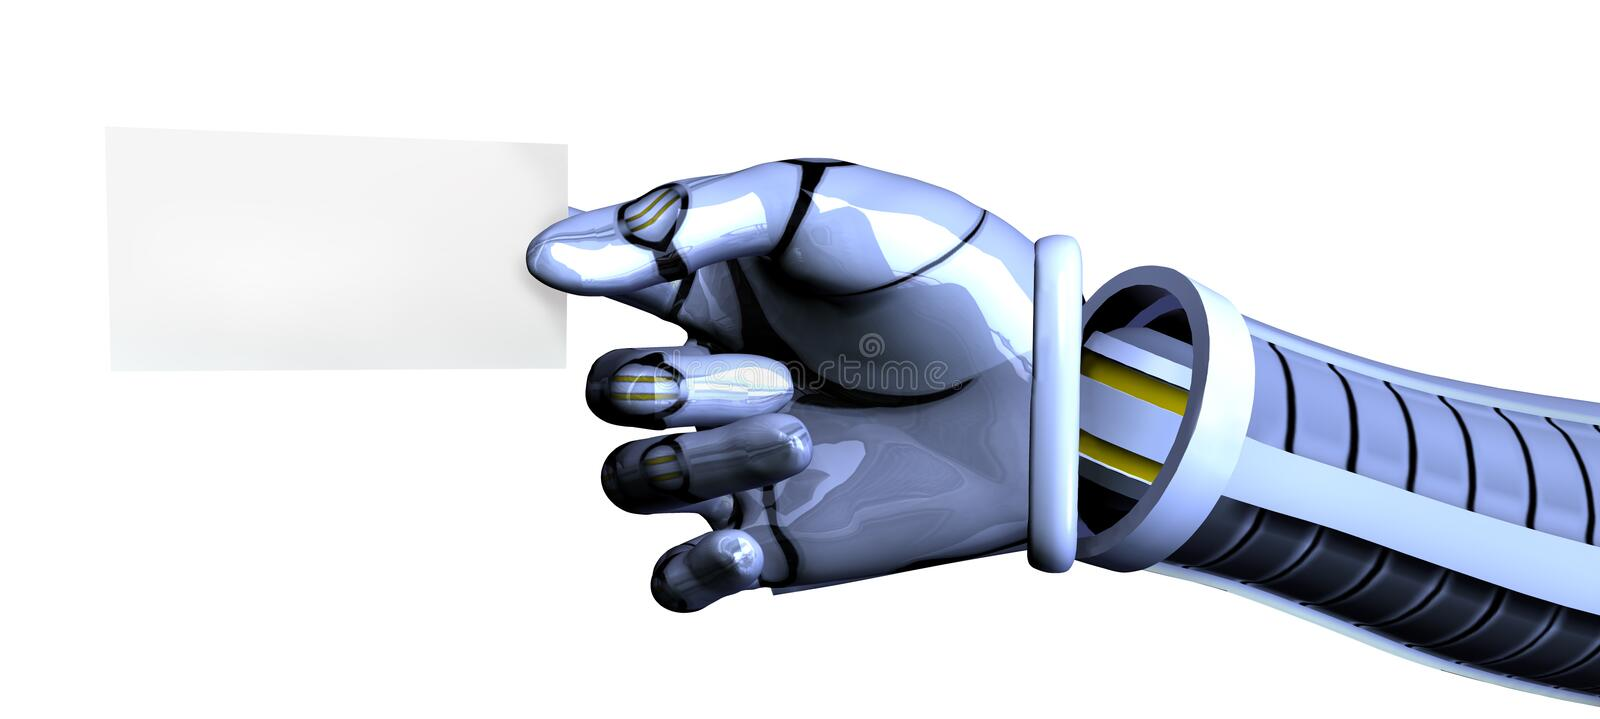 Robot Hand with Business Card - with clipping path stock illustration